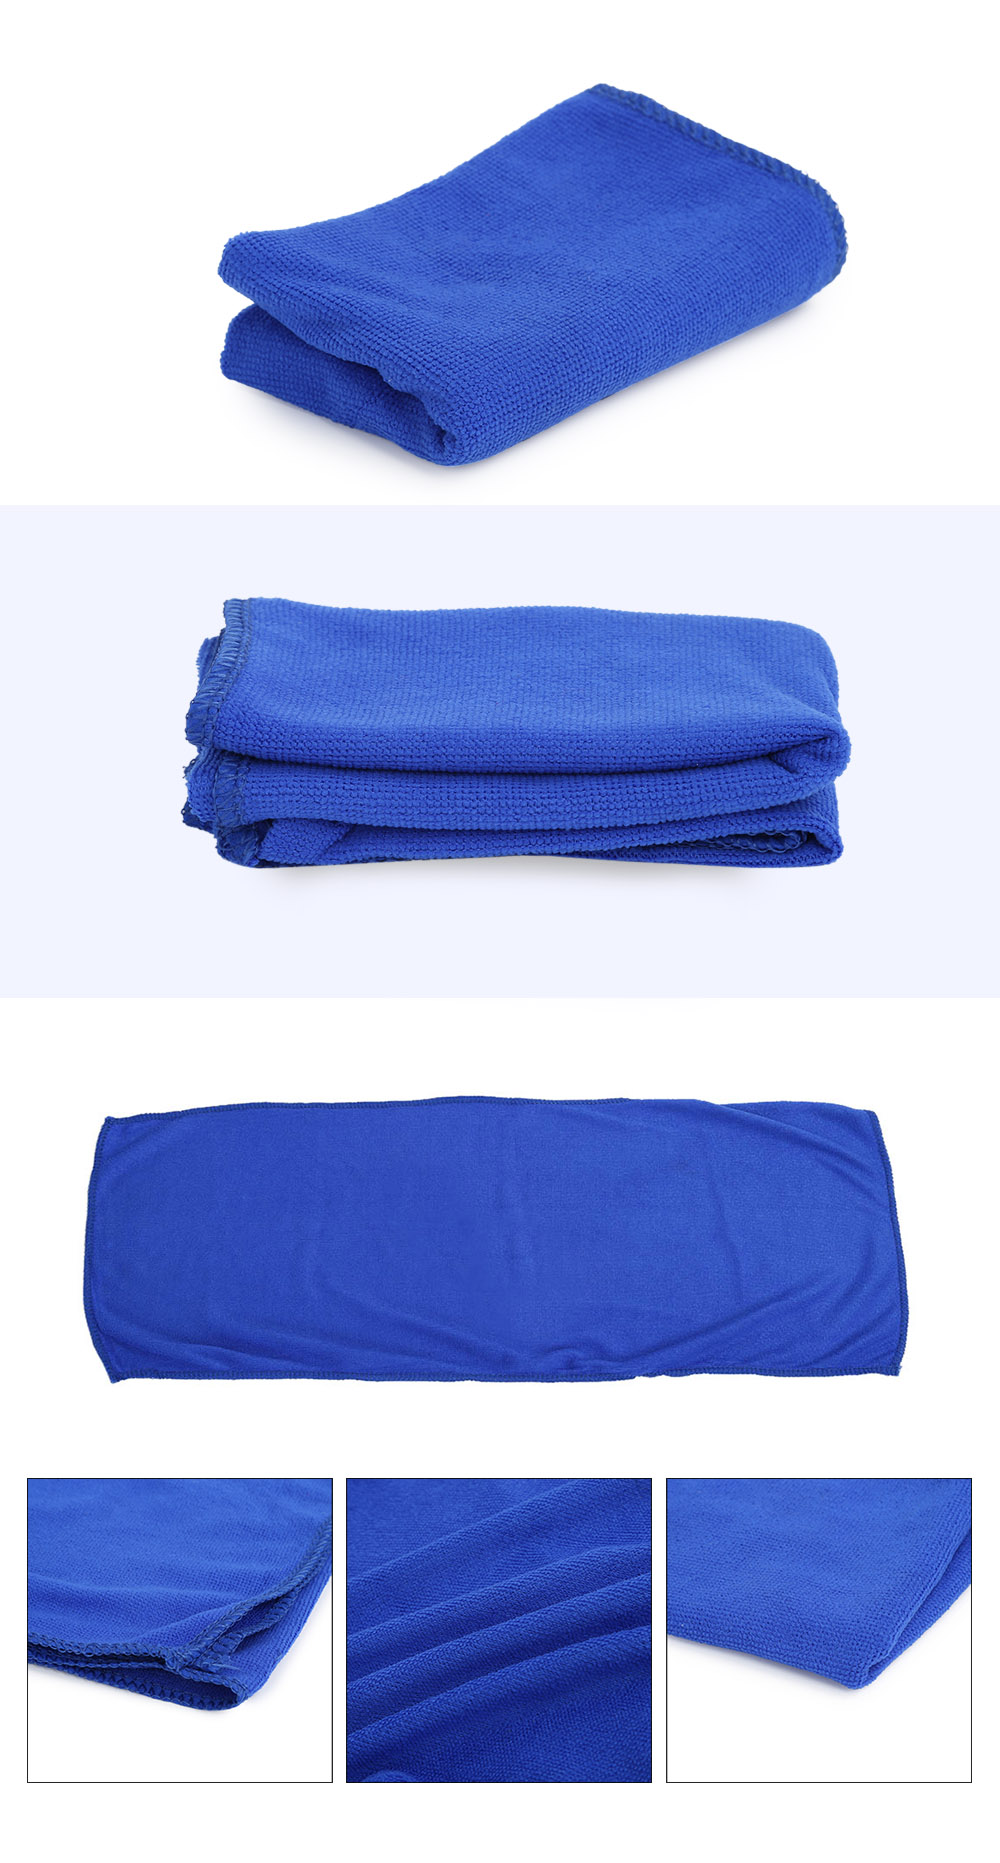 30 x 70cm Multi-purpose Microfiber Cleaning Cloth Absorbent Waxing Towel- Blue